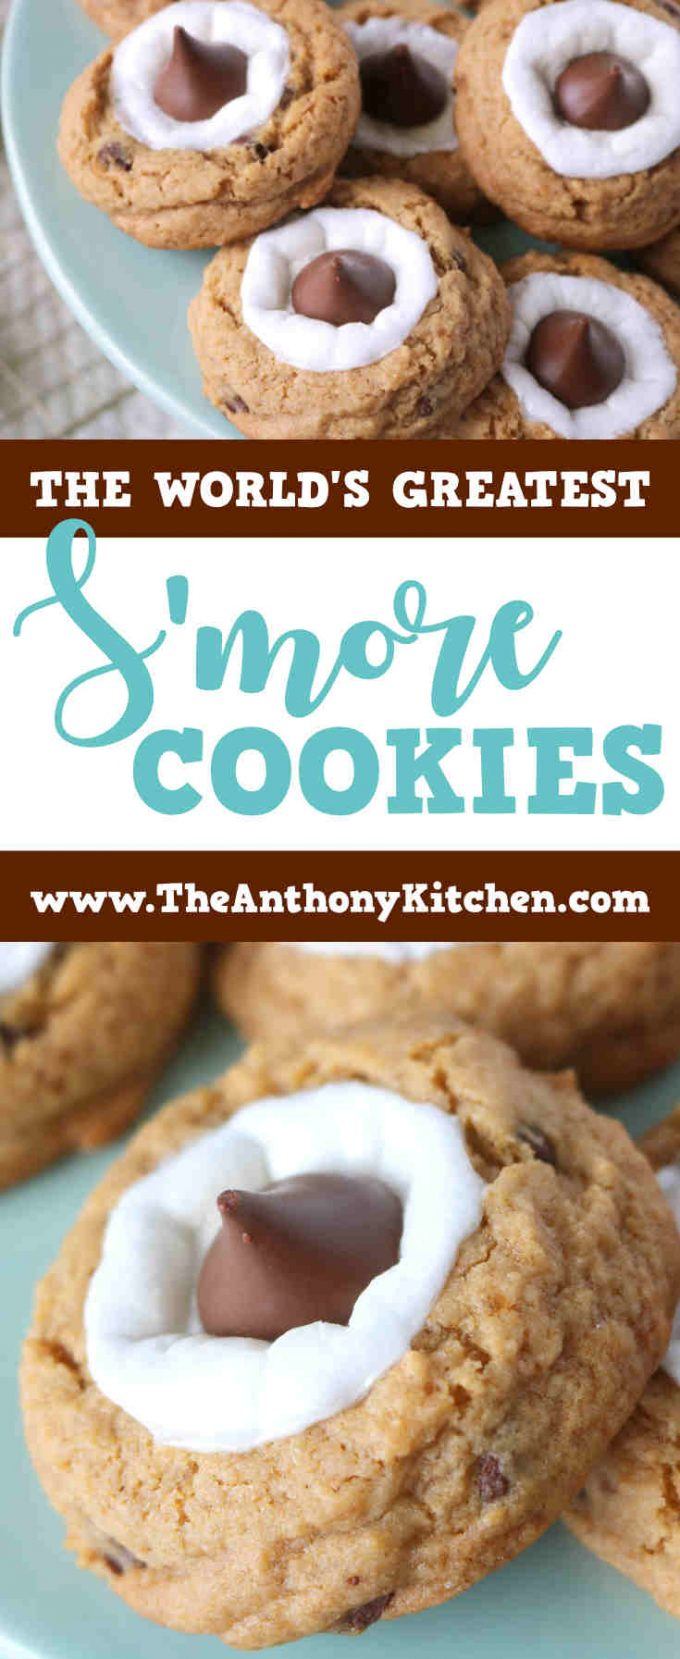 BEST SMORE COOKIE RECIPE